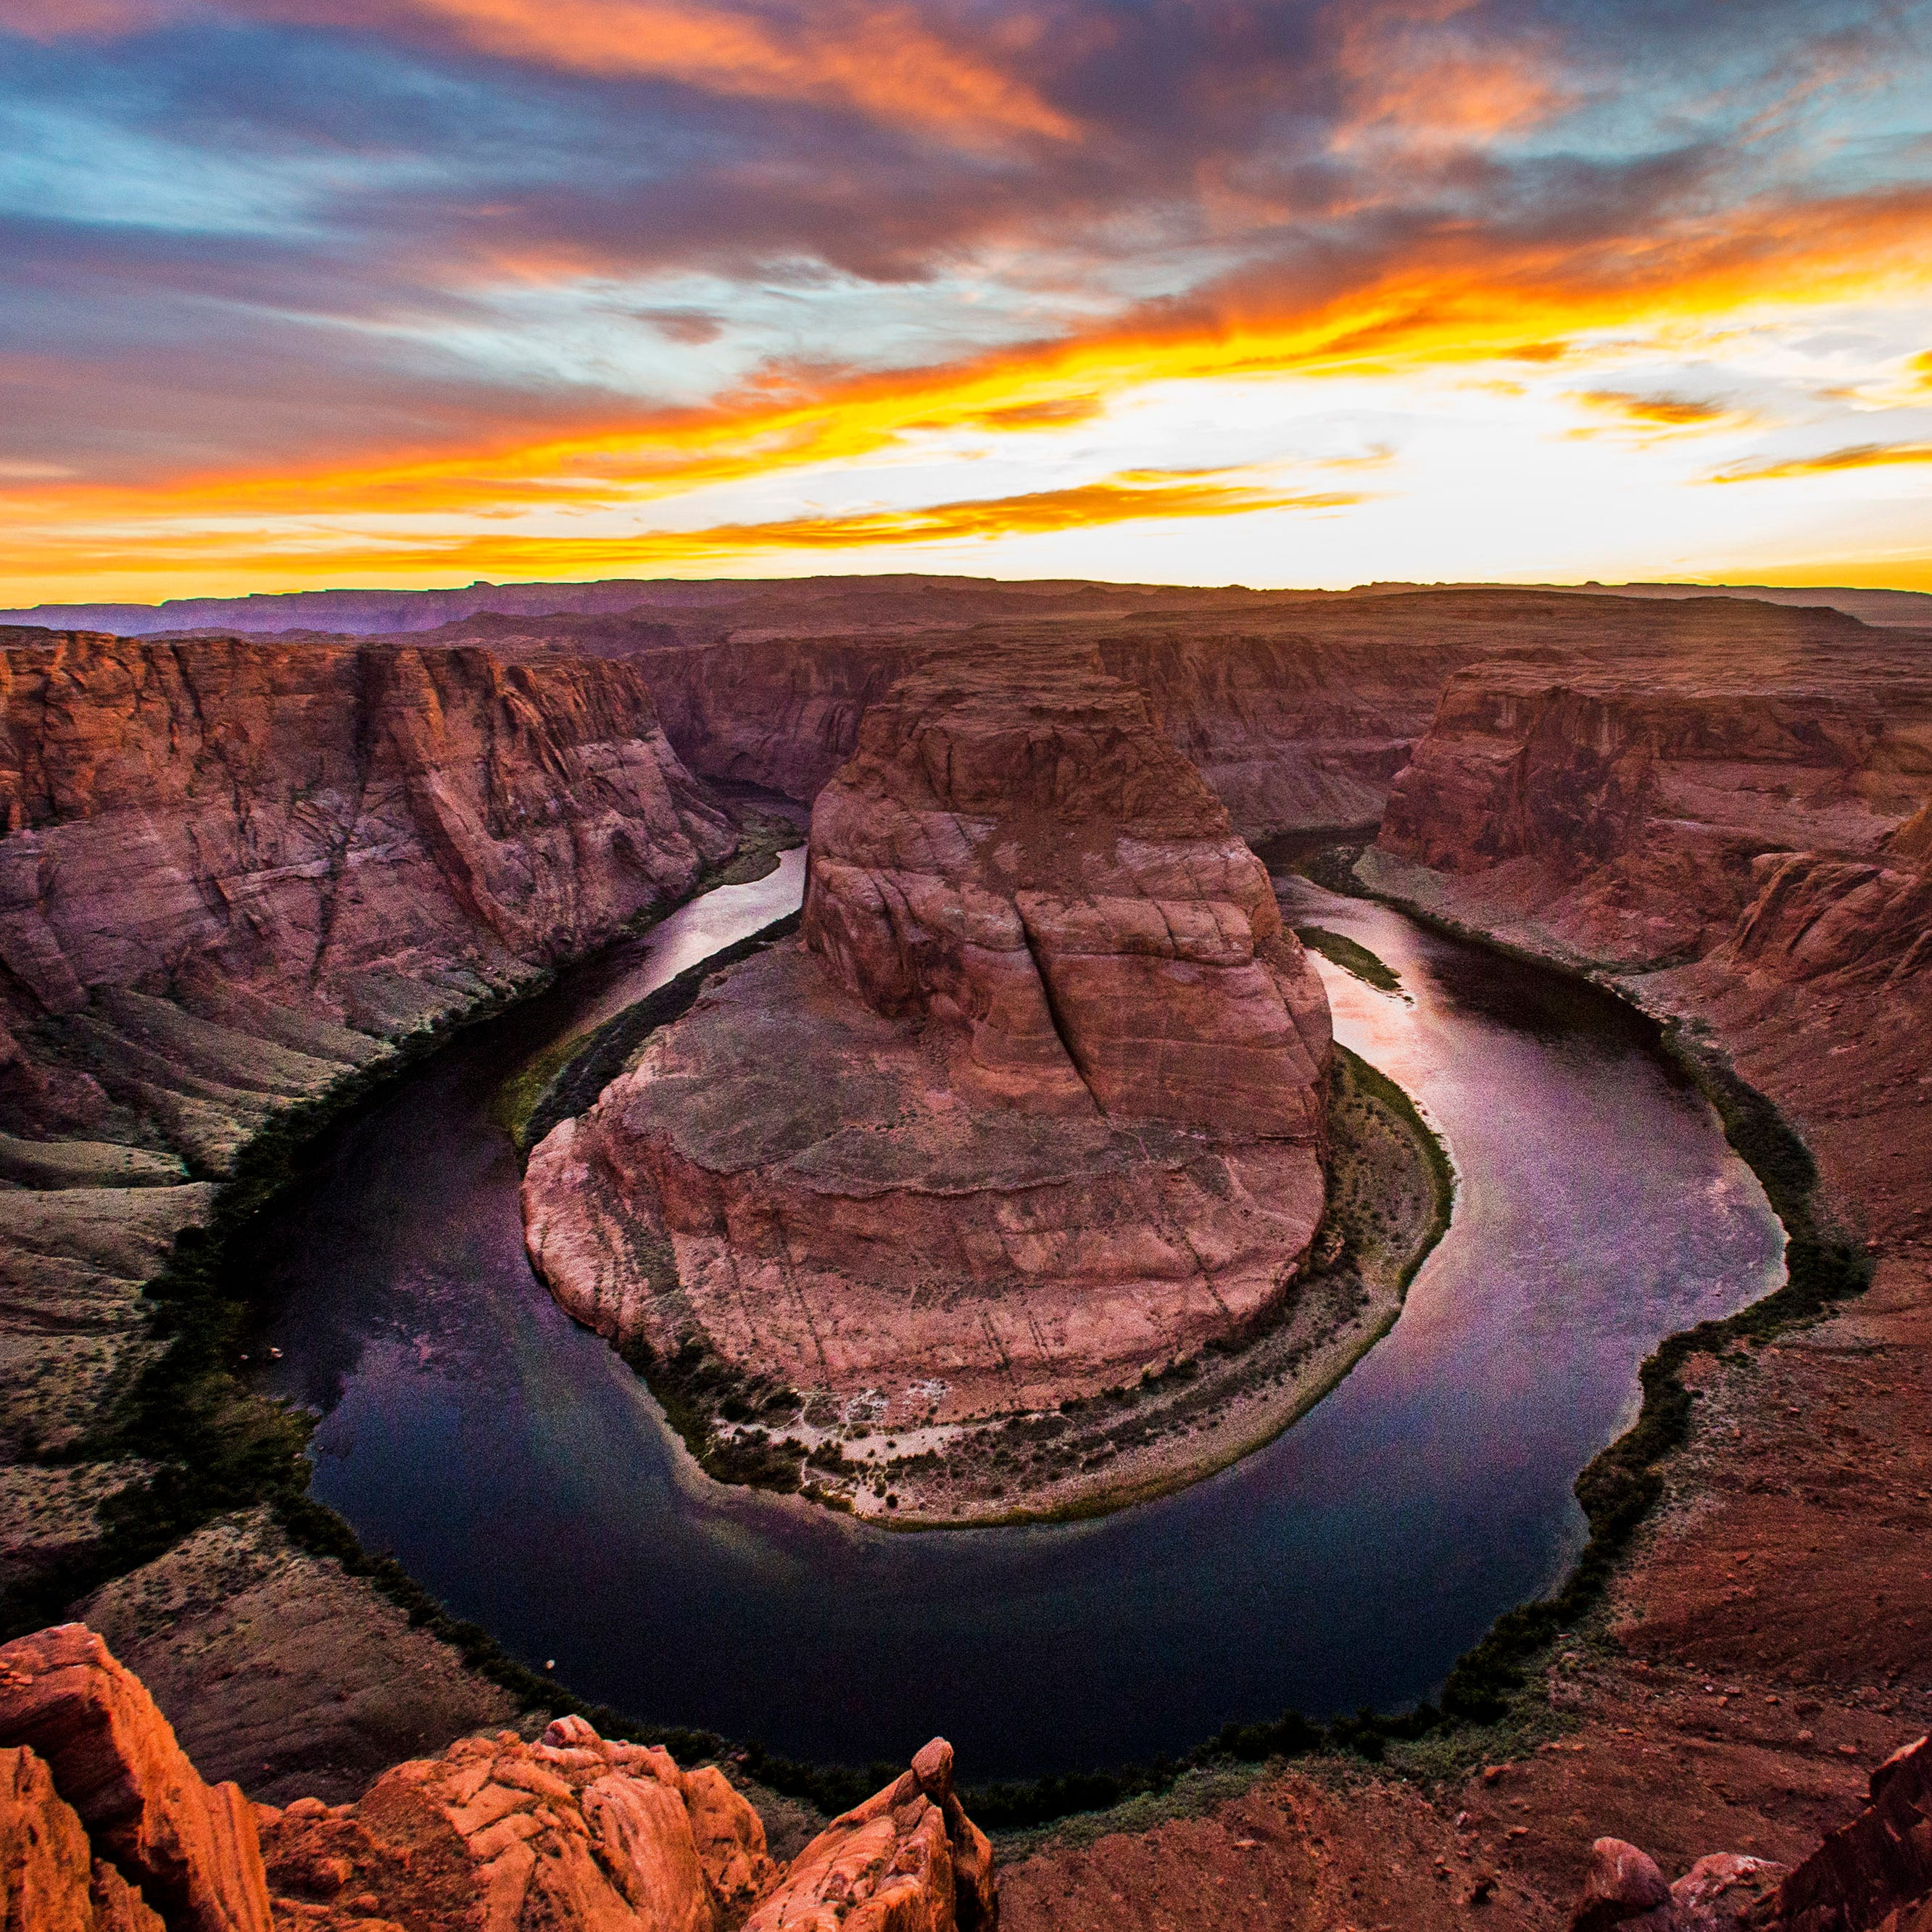 Heading to Horseshoe Bend? For the first time, it's going to cost you